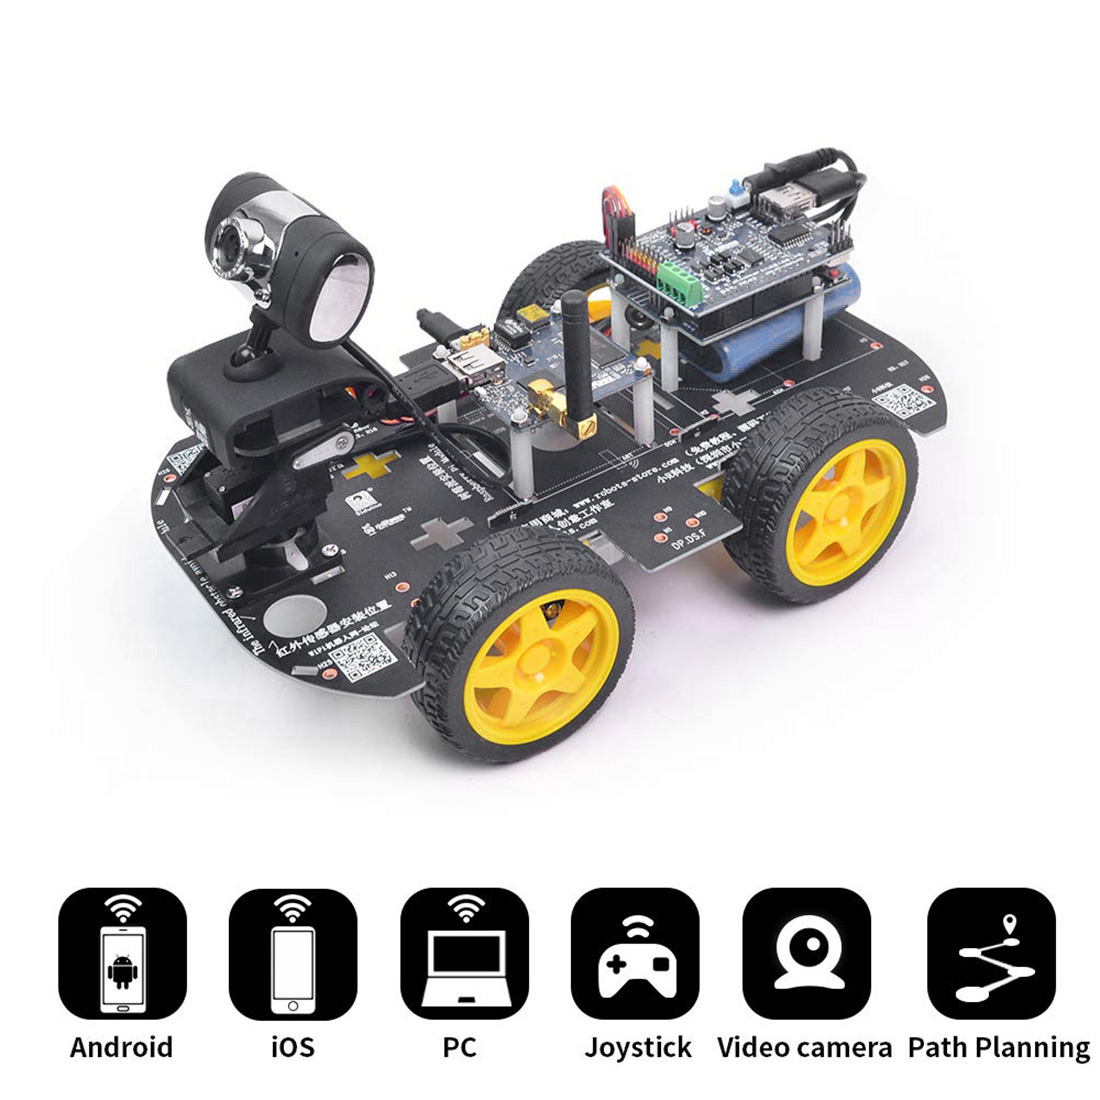 1set DIY Programmable Robot Car Wifi Steam Educational Car For Raspberry Pi 4 (2G) - Standard Edition US Plug